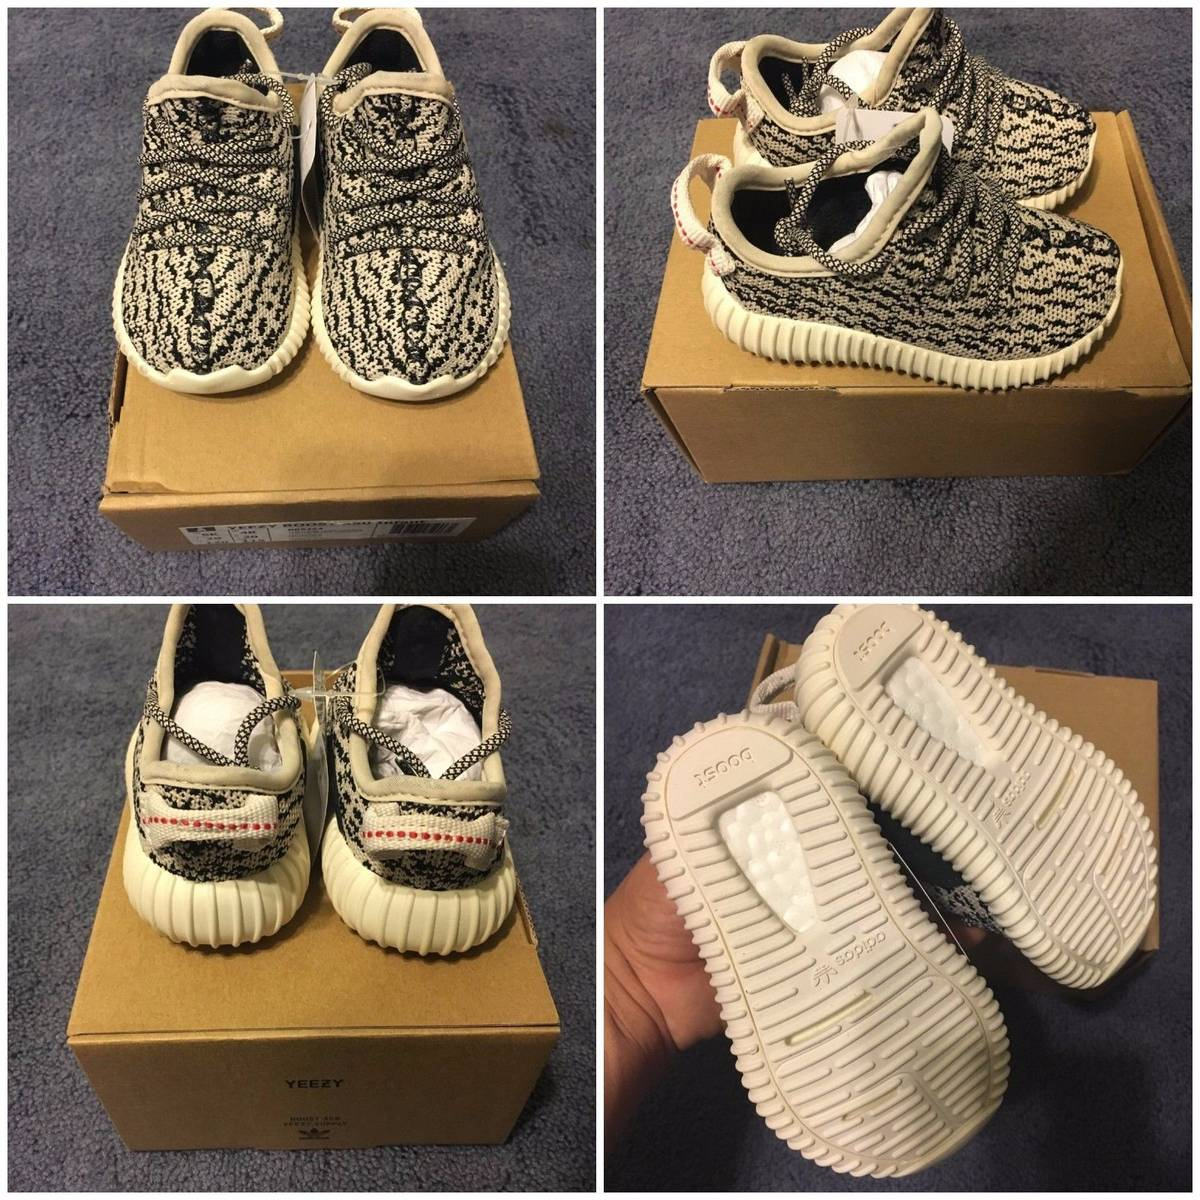 61a7e9c5 One Year Later: The adidas Yeezy Boost 350 Turtle Dove Transcends